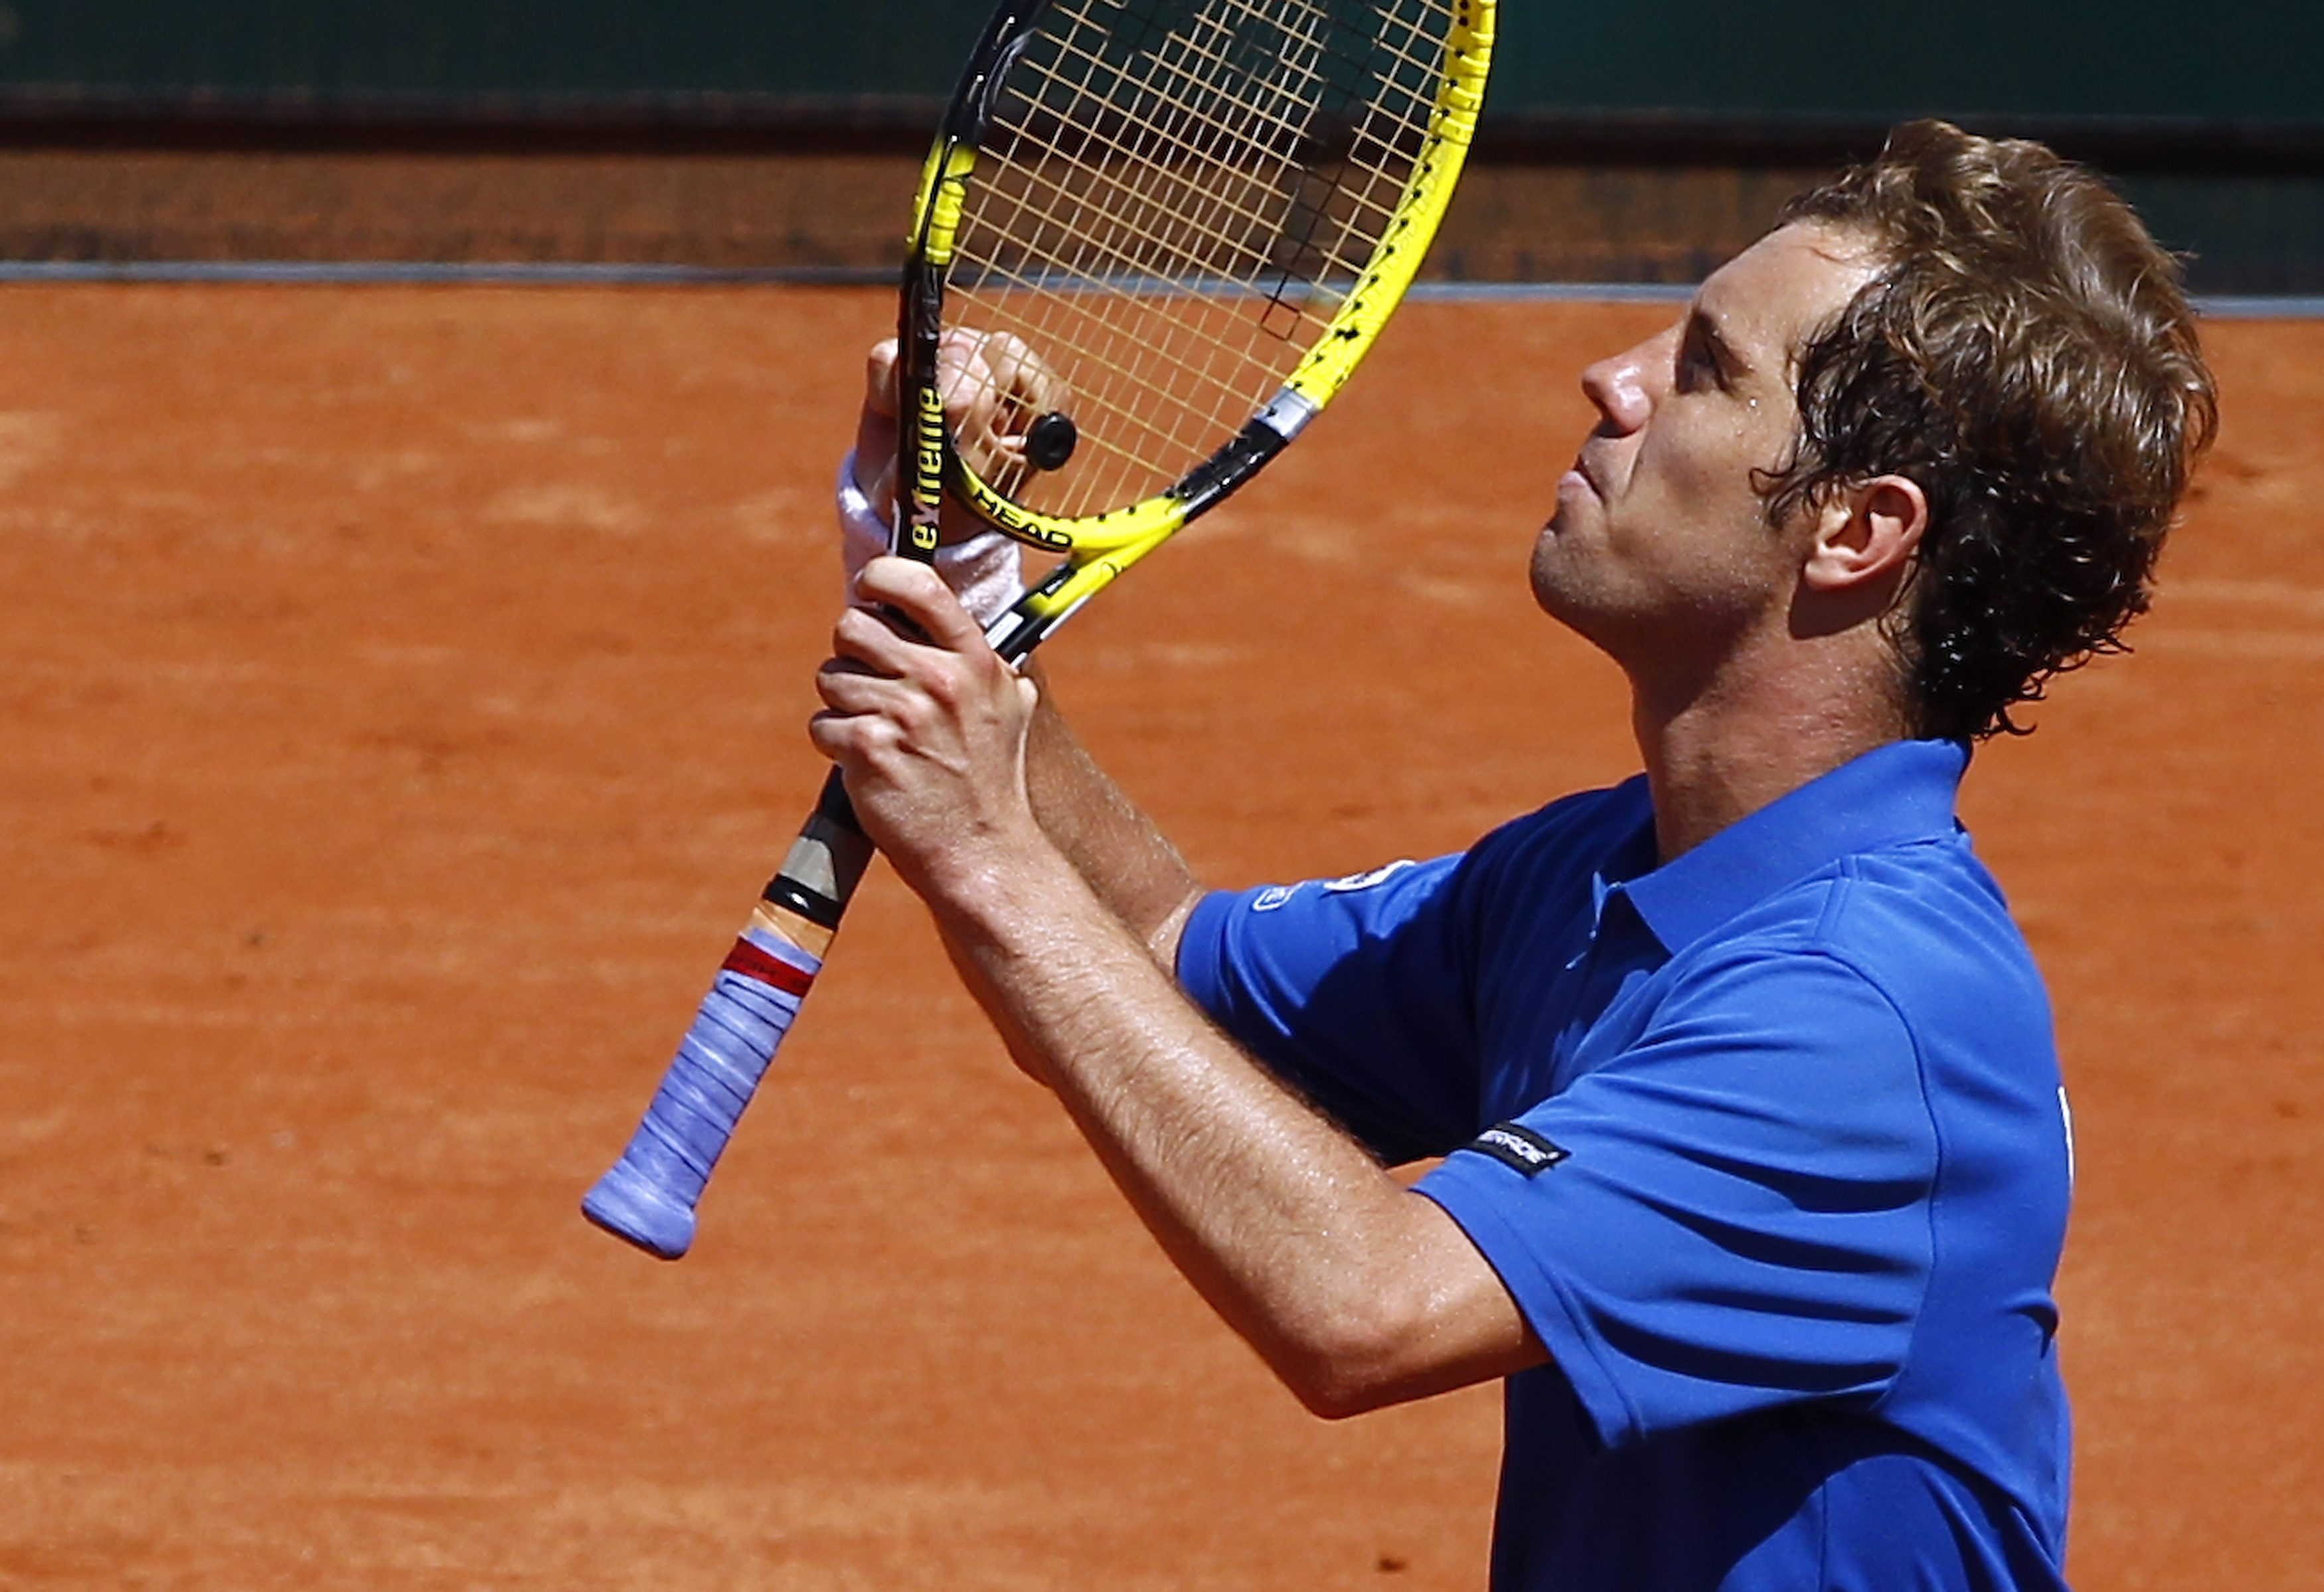 gasquet single women Nadal: 11th title still very emotional for me although he's won a record 11 french open titles, rafael nadal explains why the emotion and passion of victory still.